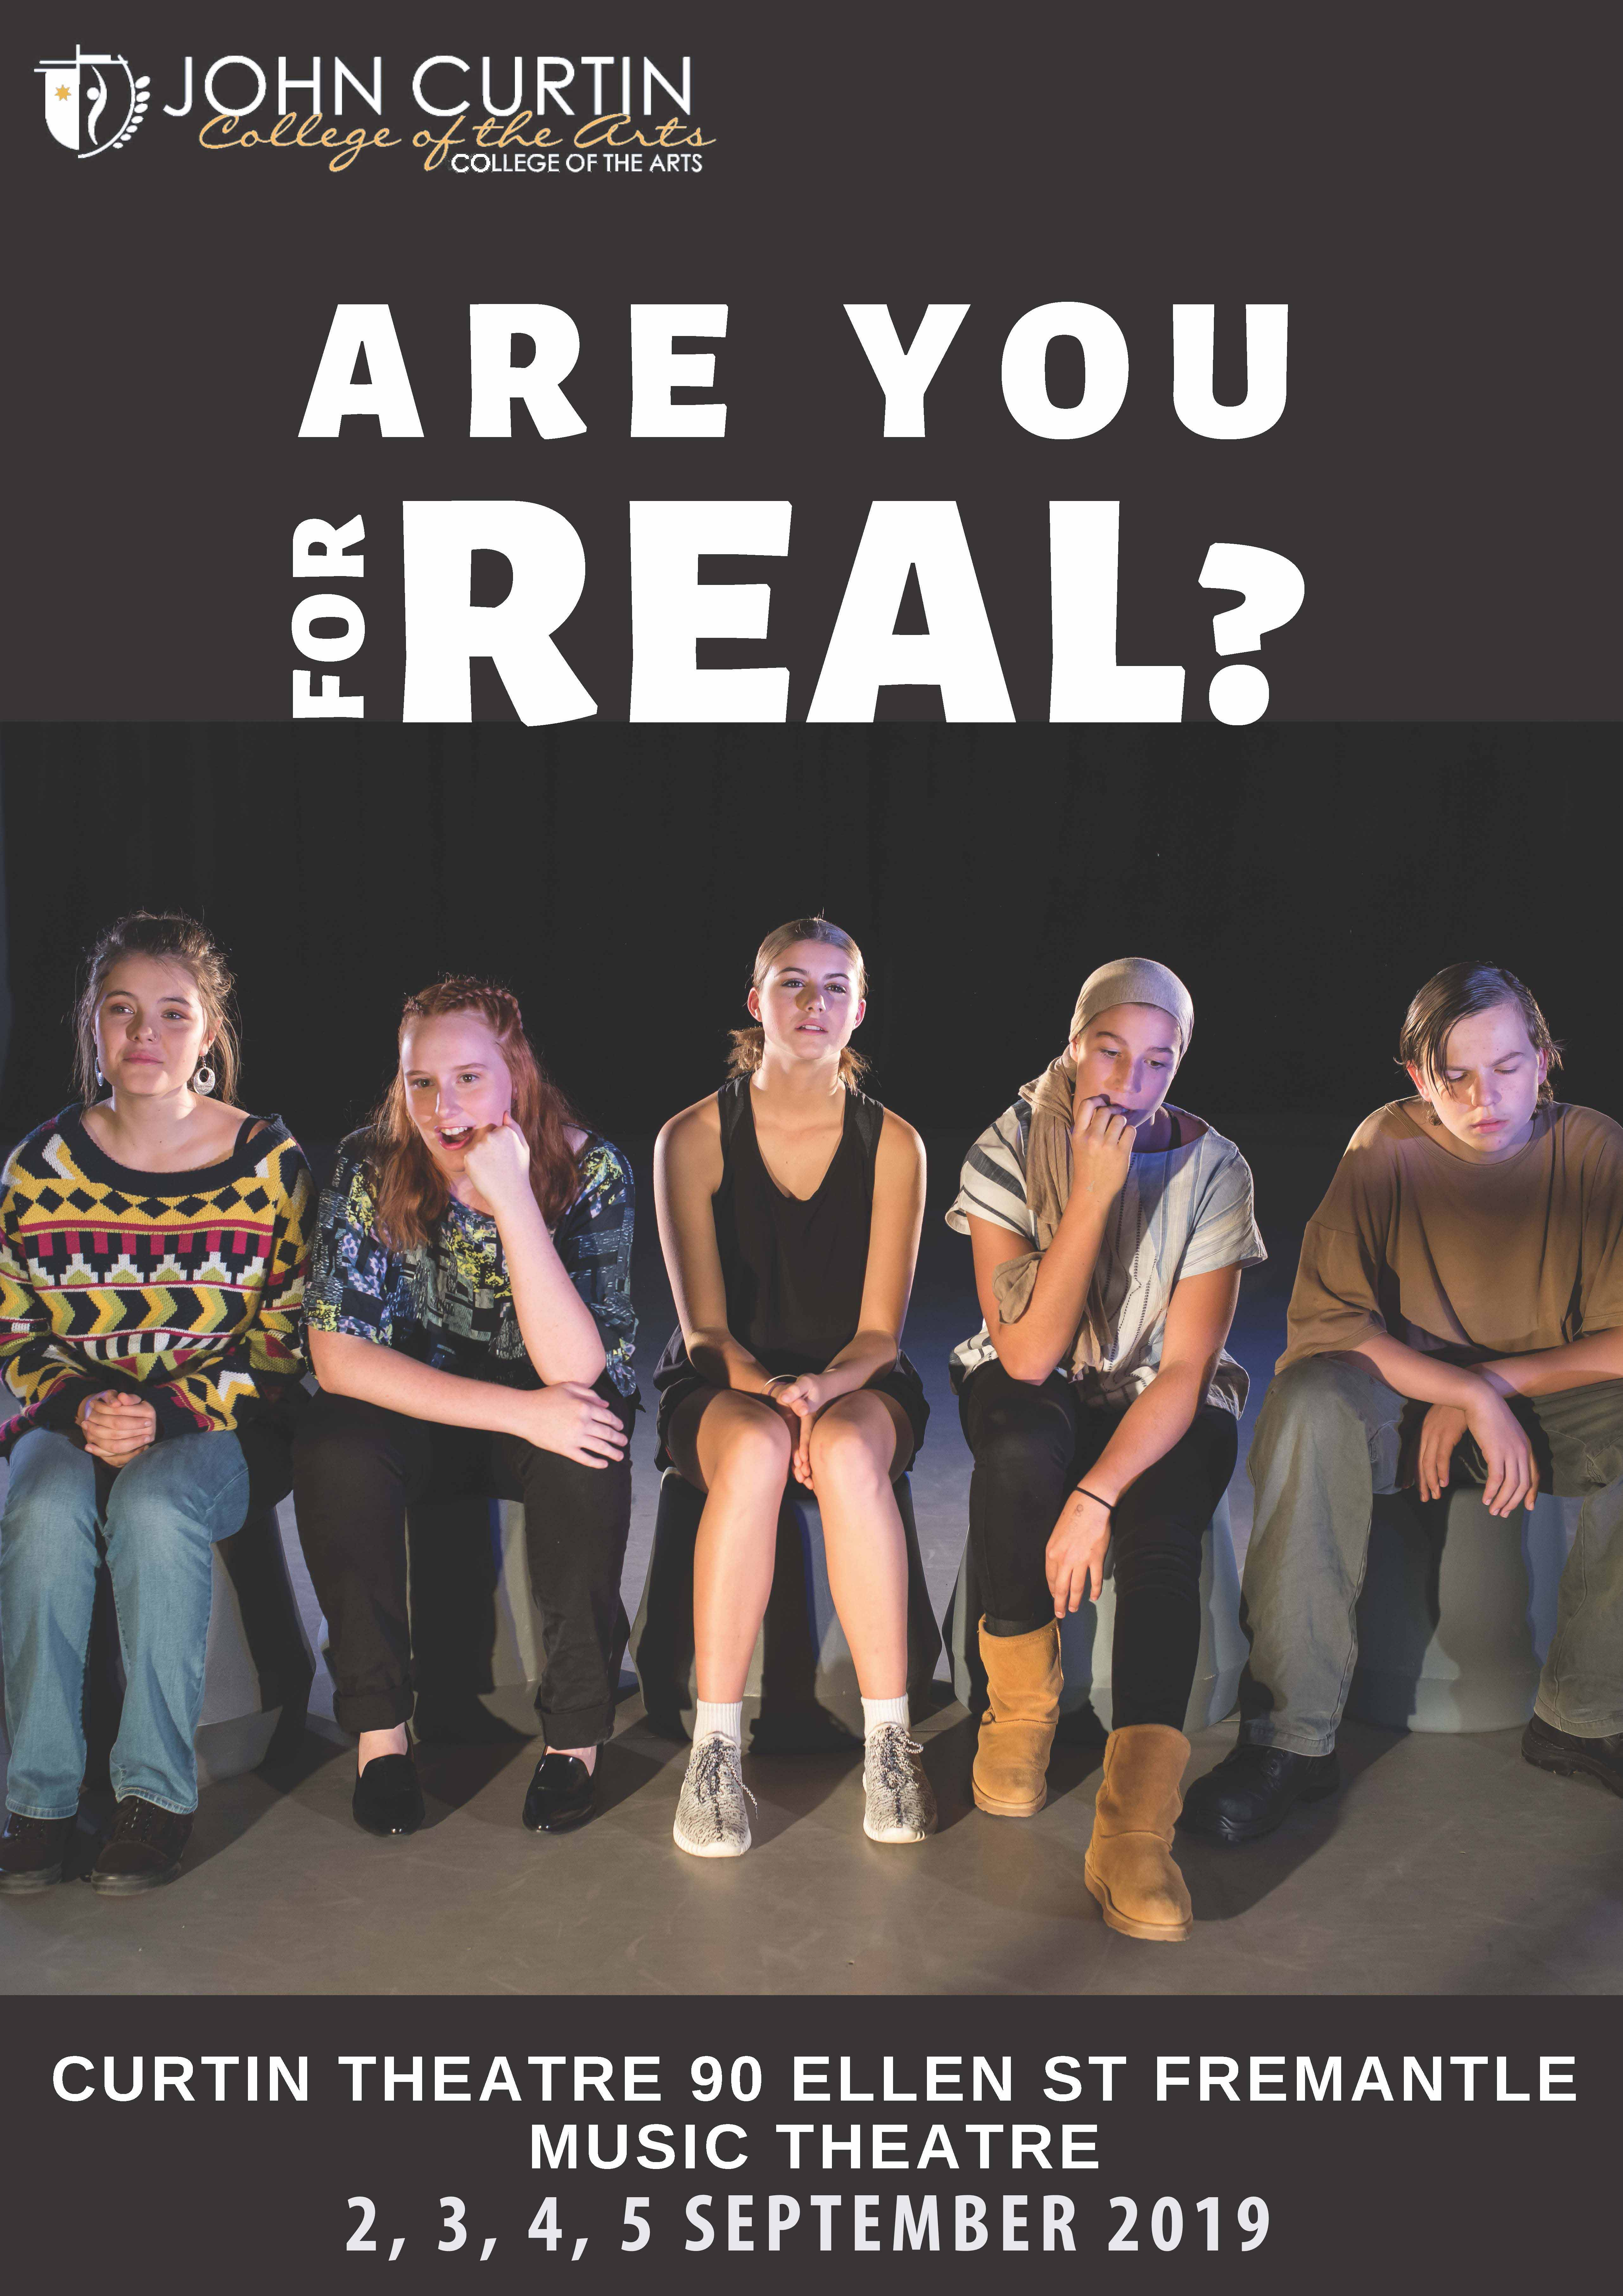 ARE YOU FOR REAL? — John Curtin College of the Arts